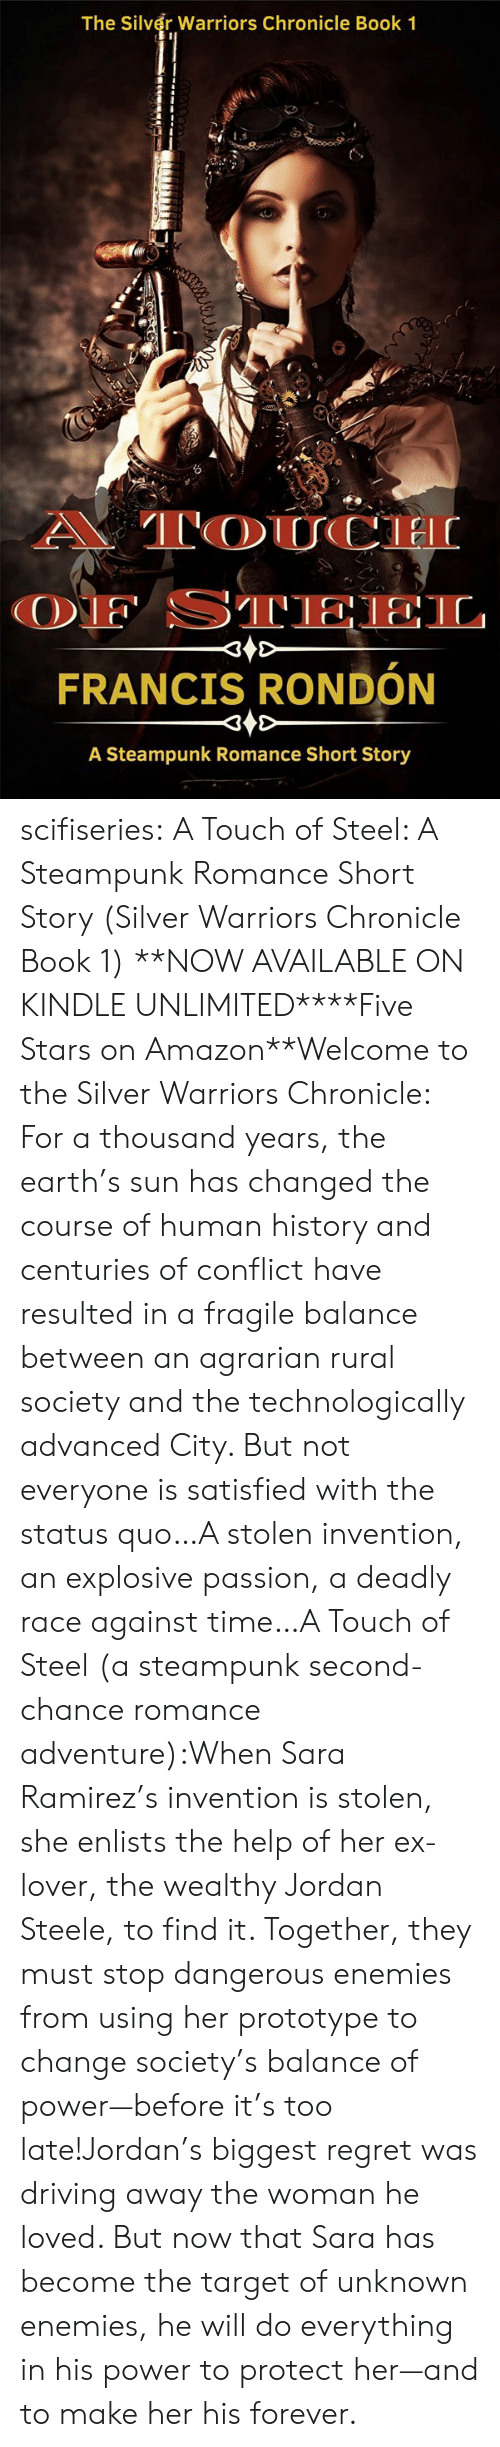 Stars: The Silver Warriors Chronicle Book 1  A TOUCH  OF STEEL  FRANCIS RONDÓN  A Steampunk Romance Short Story scifiseries:   A Touch of Steel: A Steampunk Romance Short Story (Silver Warriors Chronicle Book 1)   **NOW AVAILABLE ON KINDLE UNLIMITED****Five Stars on Amazon**Welcome to the Silver Warriors Chronicle: For a thousand years, the earth's sun has changed the course of human history and centuries of conflict have resulted in a fragile balance between an agrarian rural society and the technologically advanced City. But not everyone is satisfied with the status quo…A stolen invention, an explosive passion, a deadly race against time…A Touch of Steel (a steampunk second-chance romance adventure):When Sara Ramirez's invention is stolen, she enlists the help of her ex-lover, the wealthy Jordan Steele, to find it. Together, they must stop dangerous enemies from using her prototype to change society's balance of power—before it's too late!Jordan's biggest regret was driving away the woman he loved. But now that Sara has become the target of unknown enemies, he will do everything in his power to protect her—and to make her his forever.